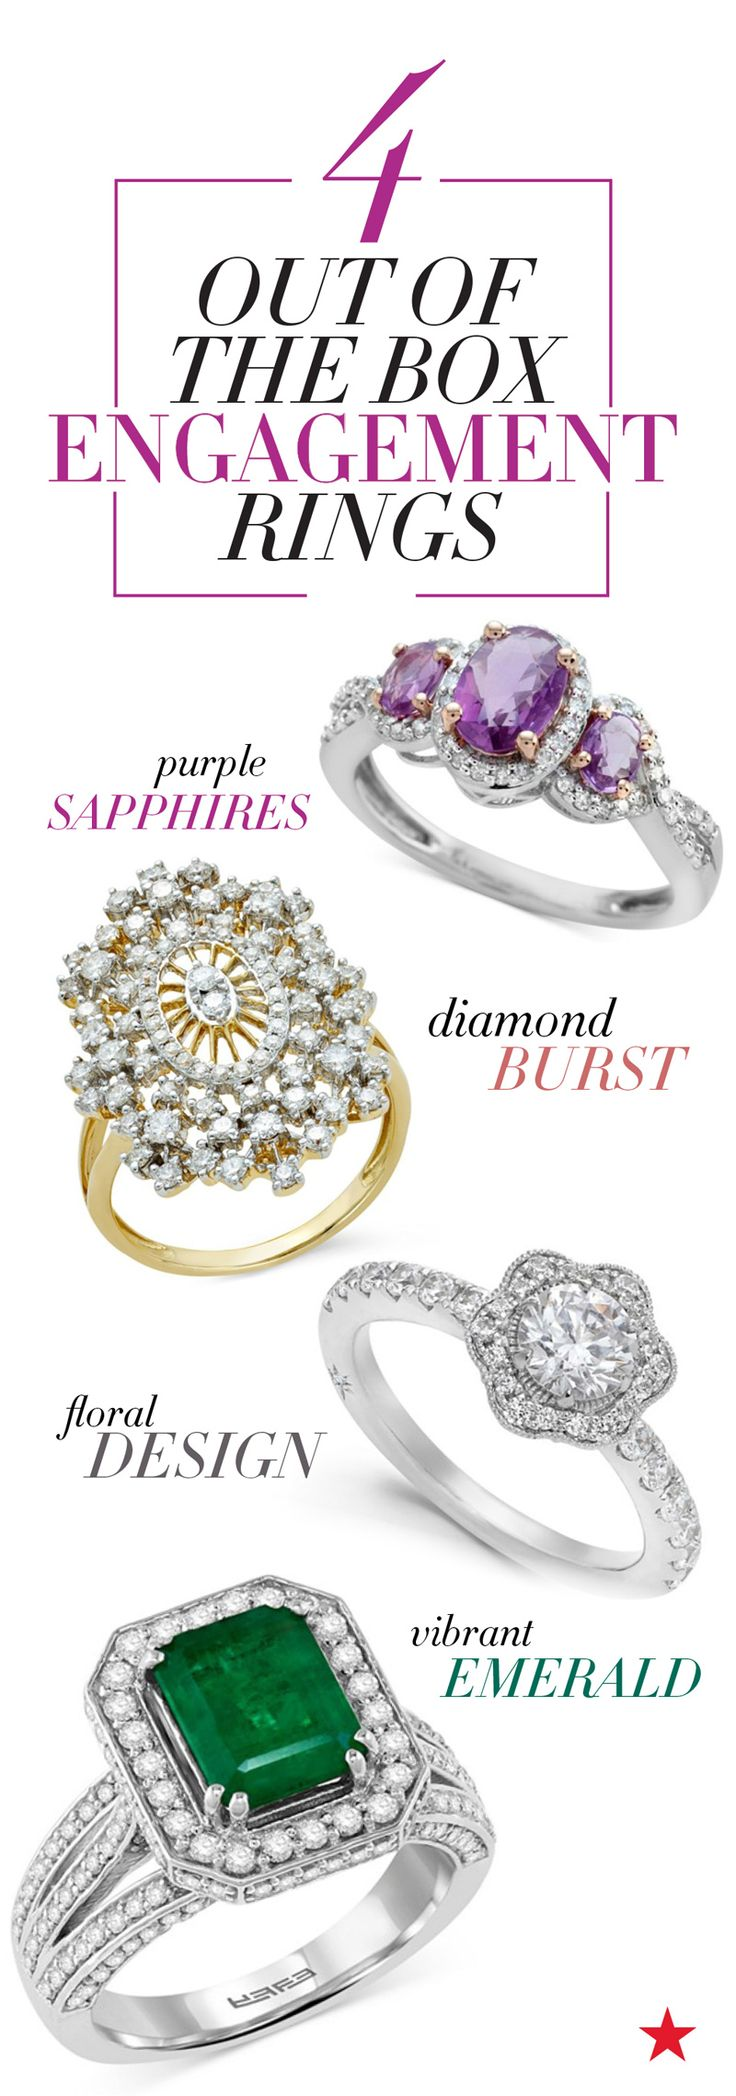 Looking for an engagement ring that will truly impress? From bright colors to unique designs, the latest trend is all about thinking outside the (ring) box.